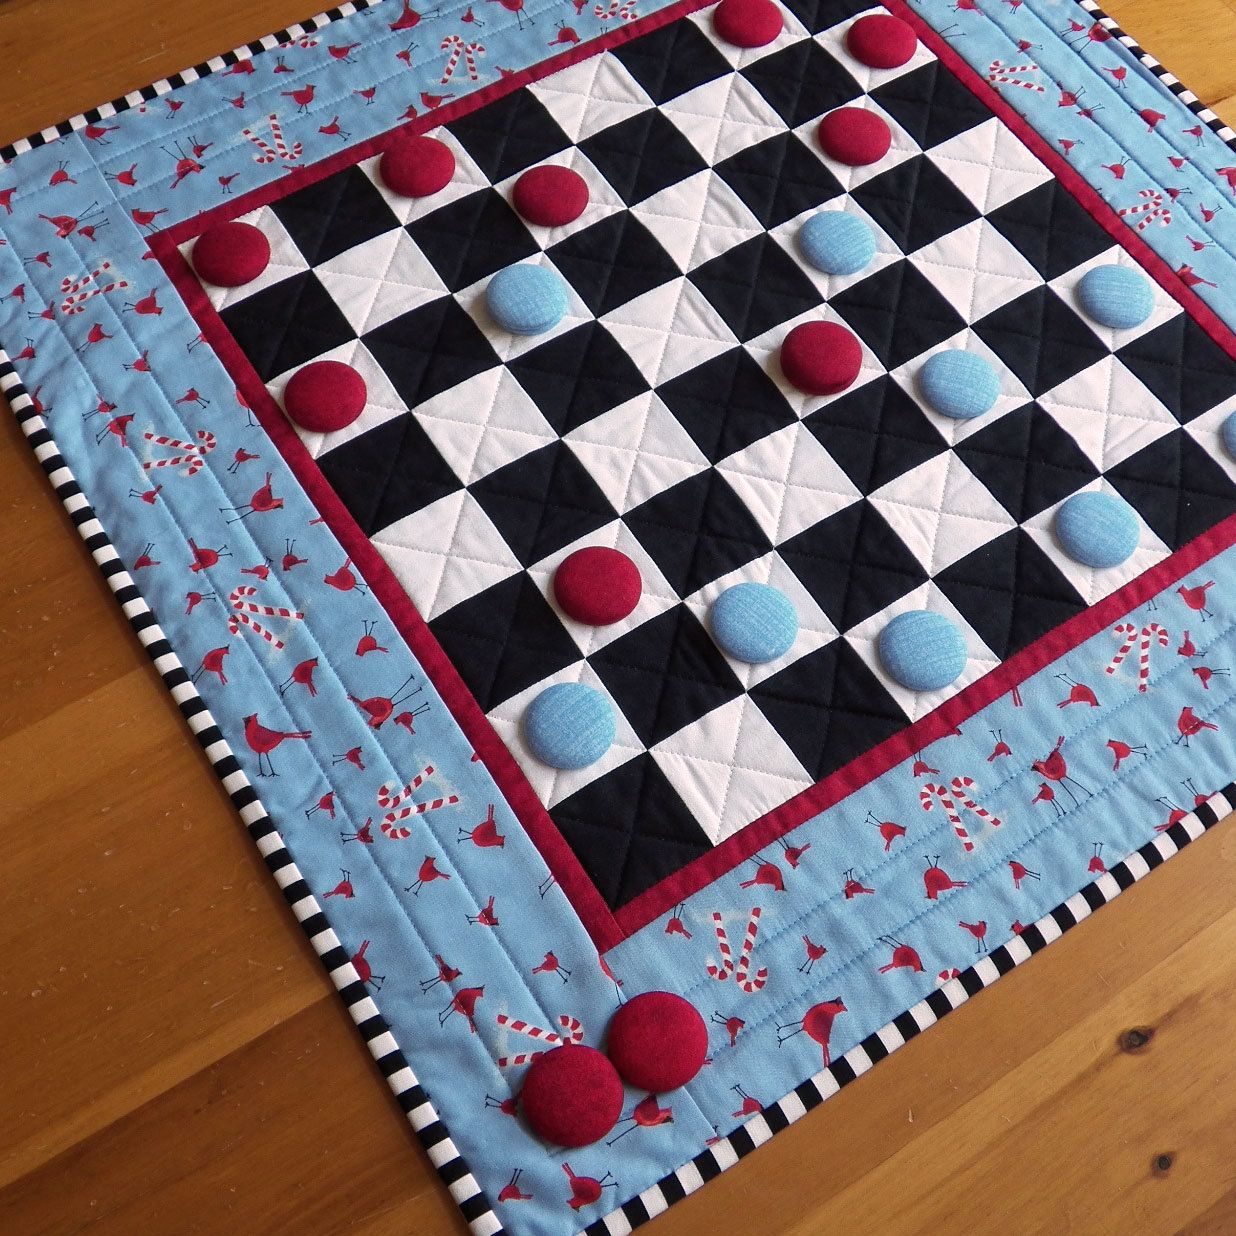 Custom Checkers Game Board | Quilted Checkerboard Game -- Any Fabric ...